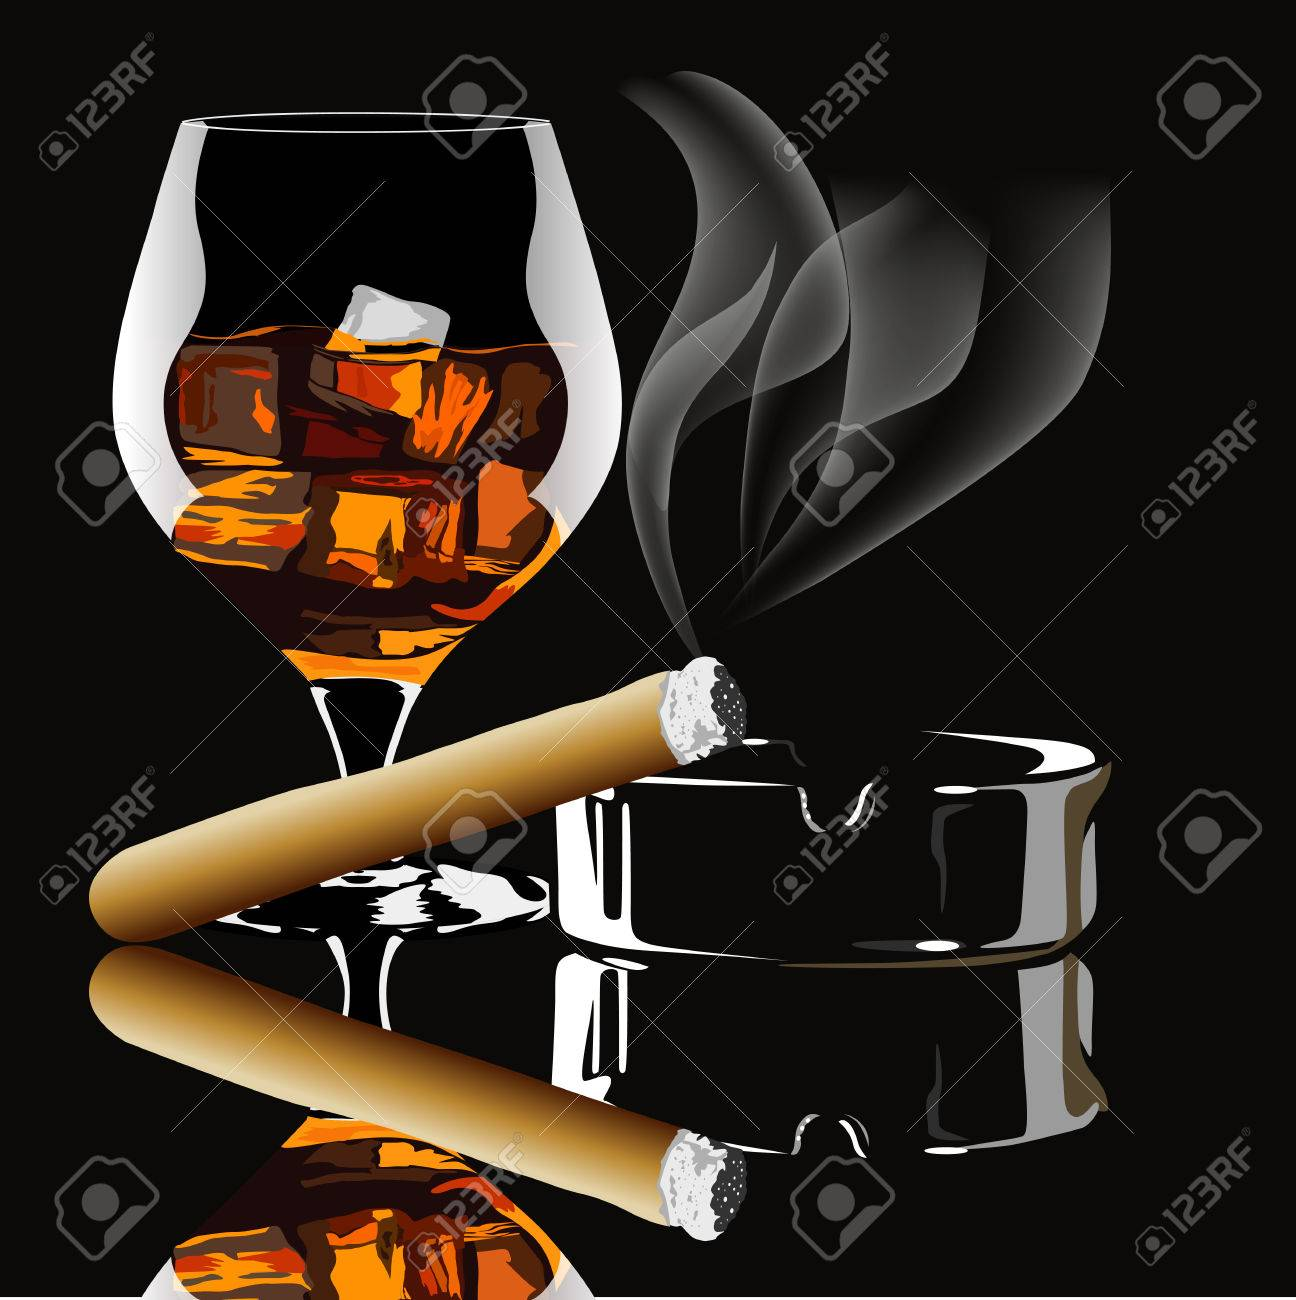 Cognac and cigar with smoke on black background - 51907374